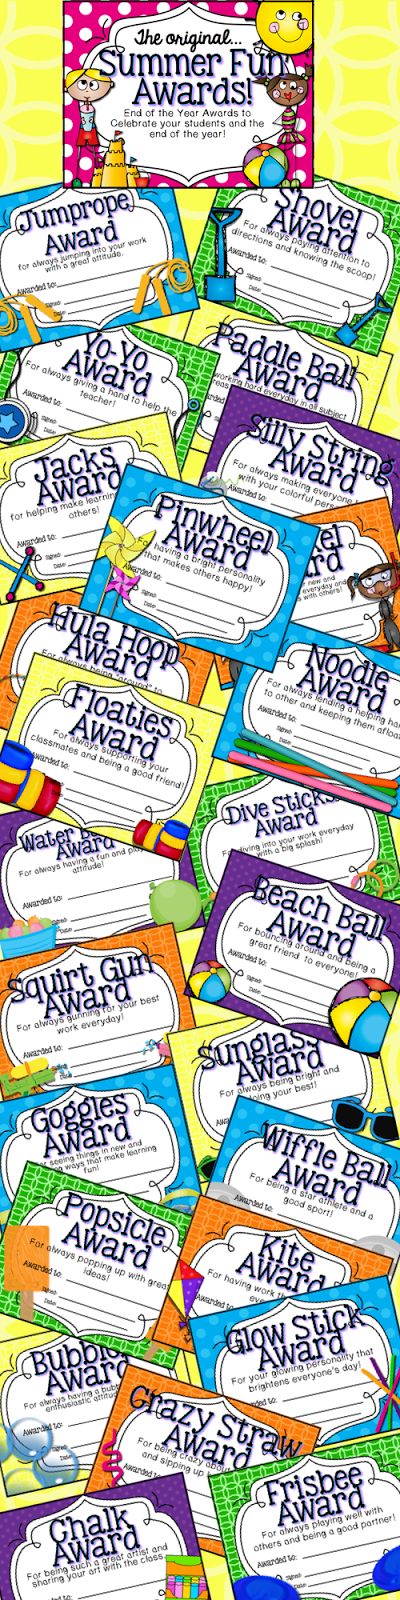 http://www.teacherspayteachers.com/Product/End-of-the-Year-Awards-Summer-Fun-Theme